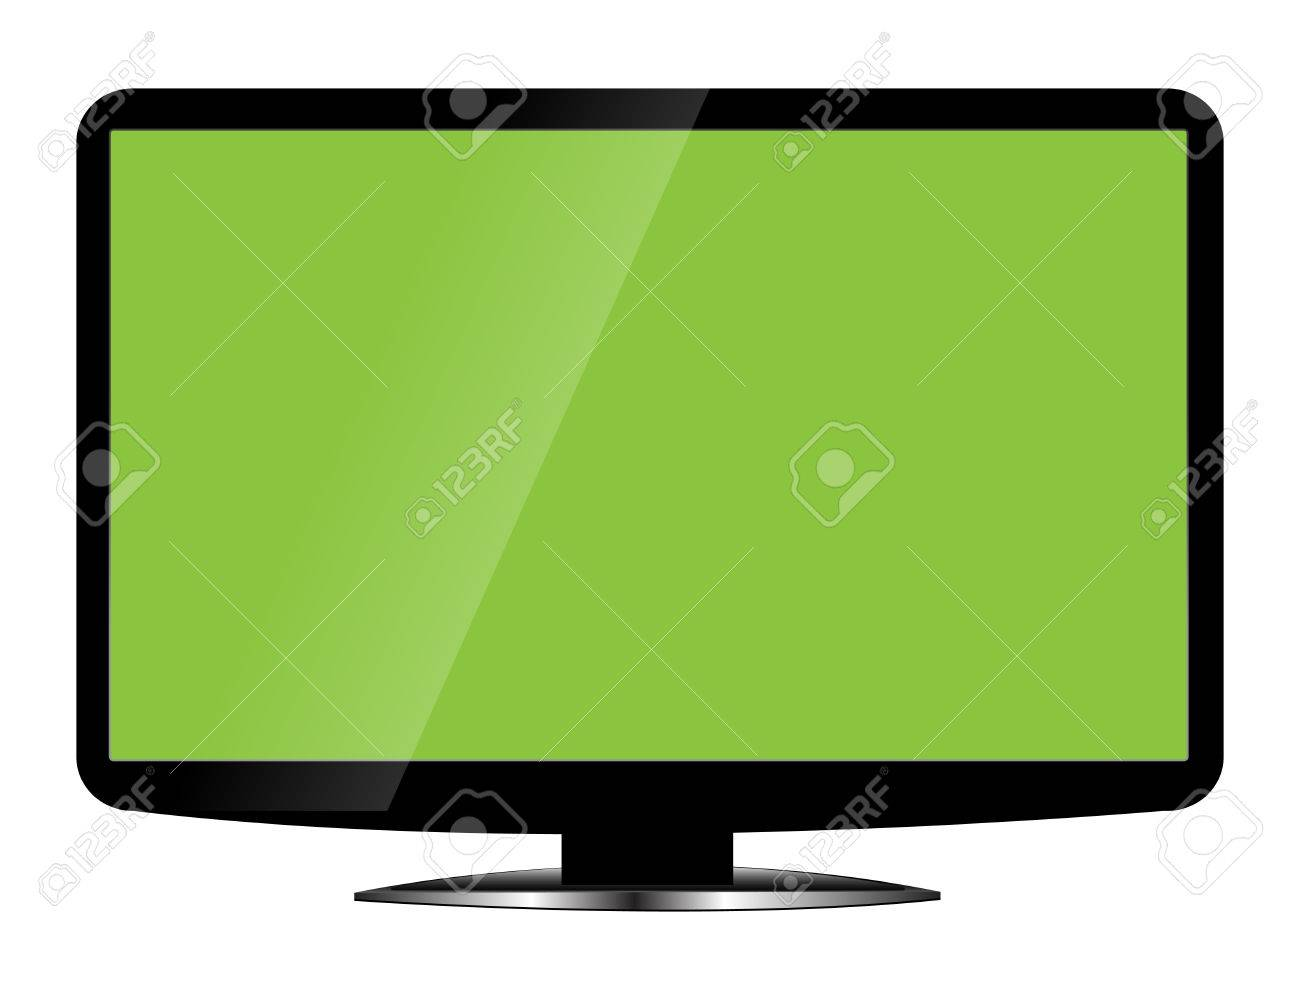 Blank Lcd Tv Template Royalty Free Cliparts, Vectors, And Stock ...